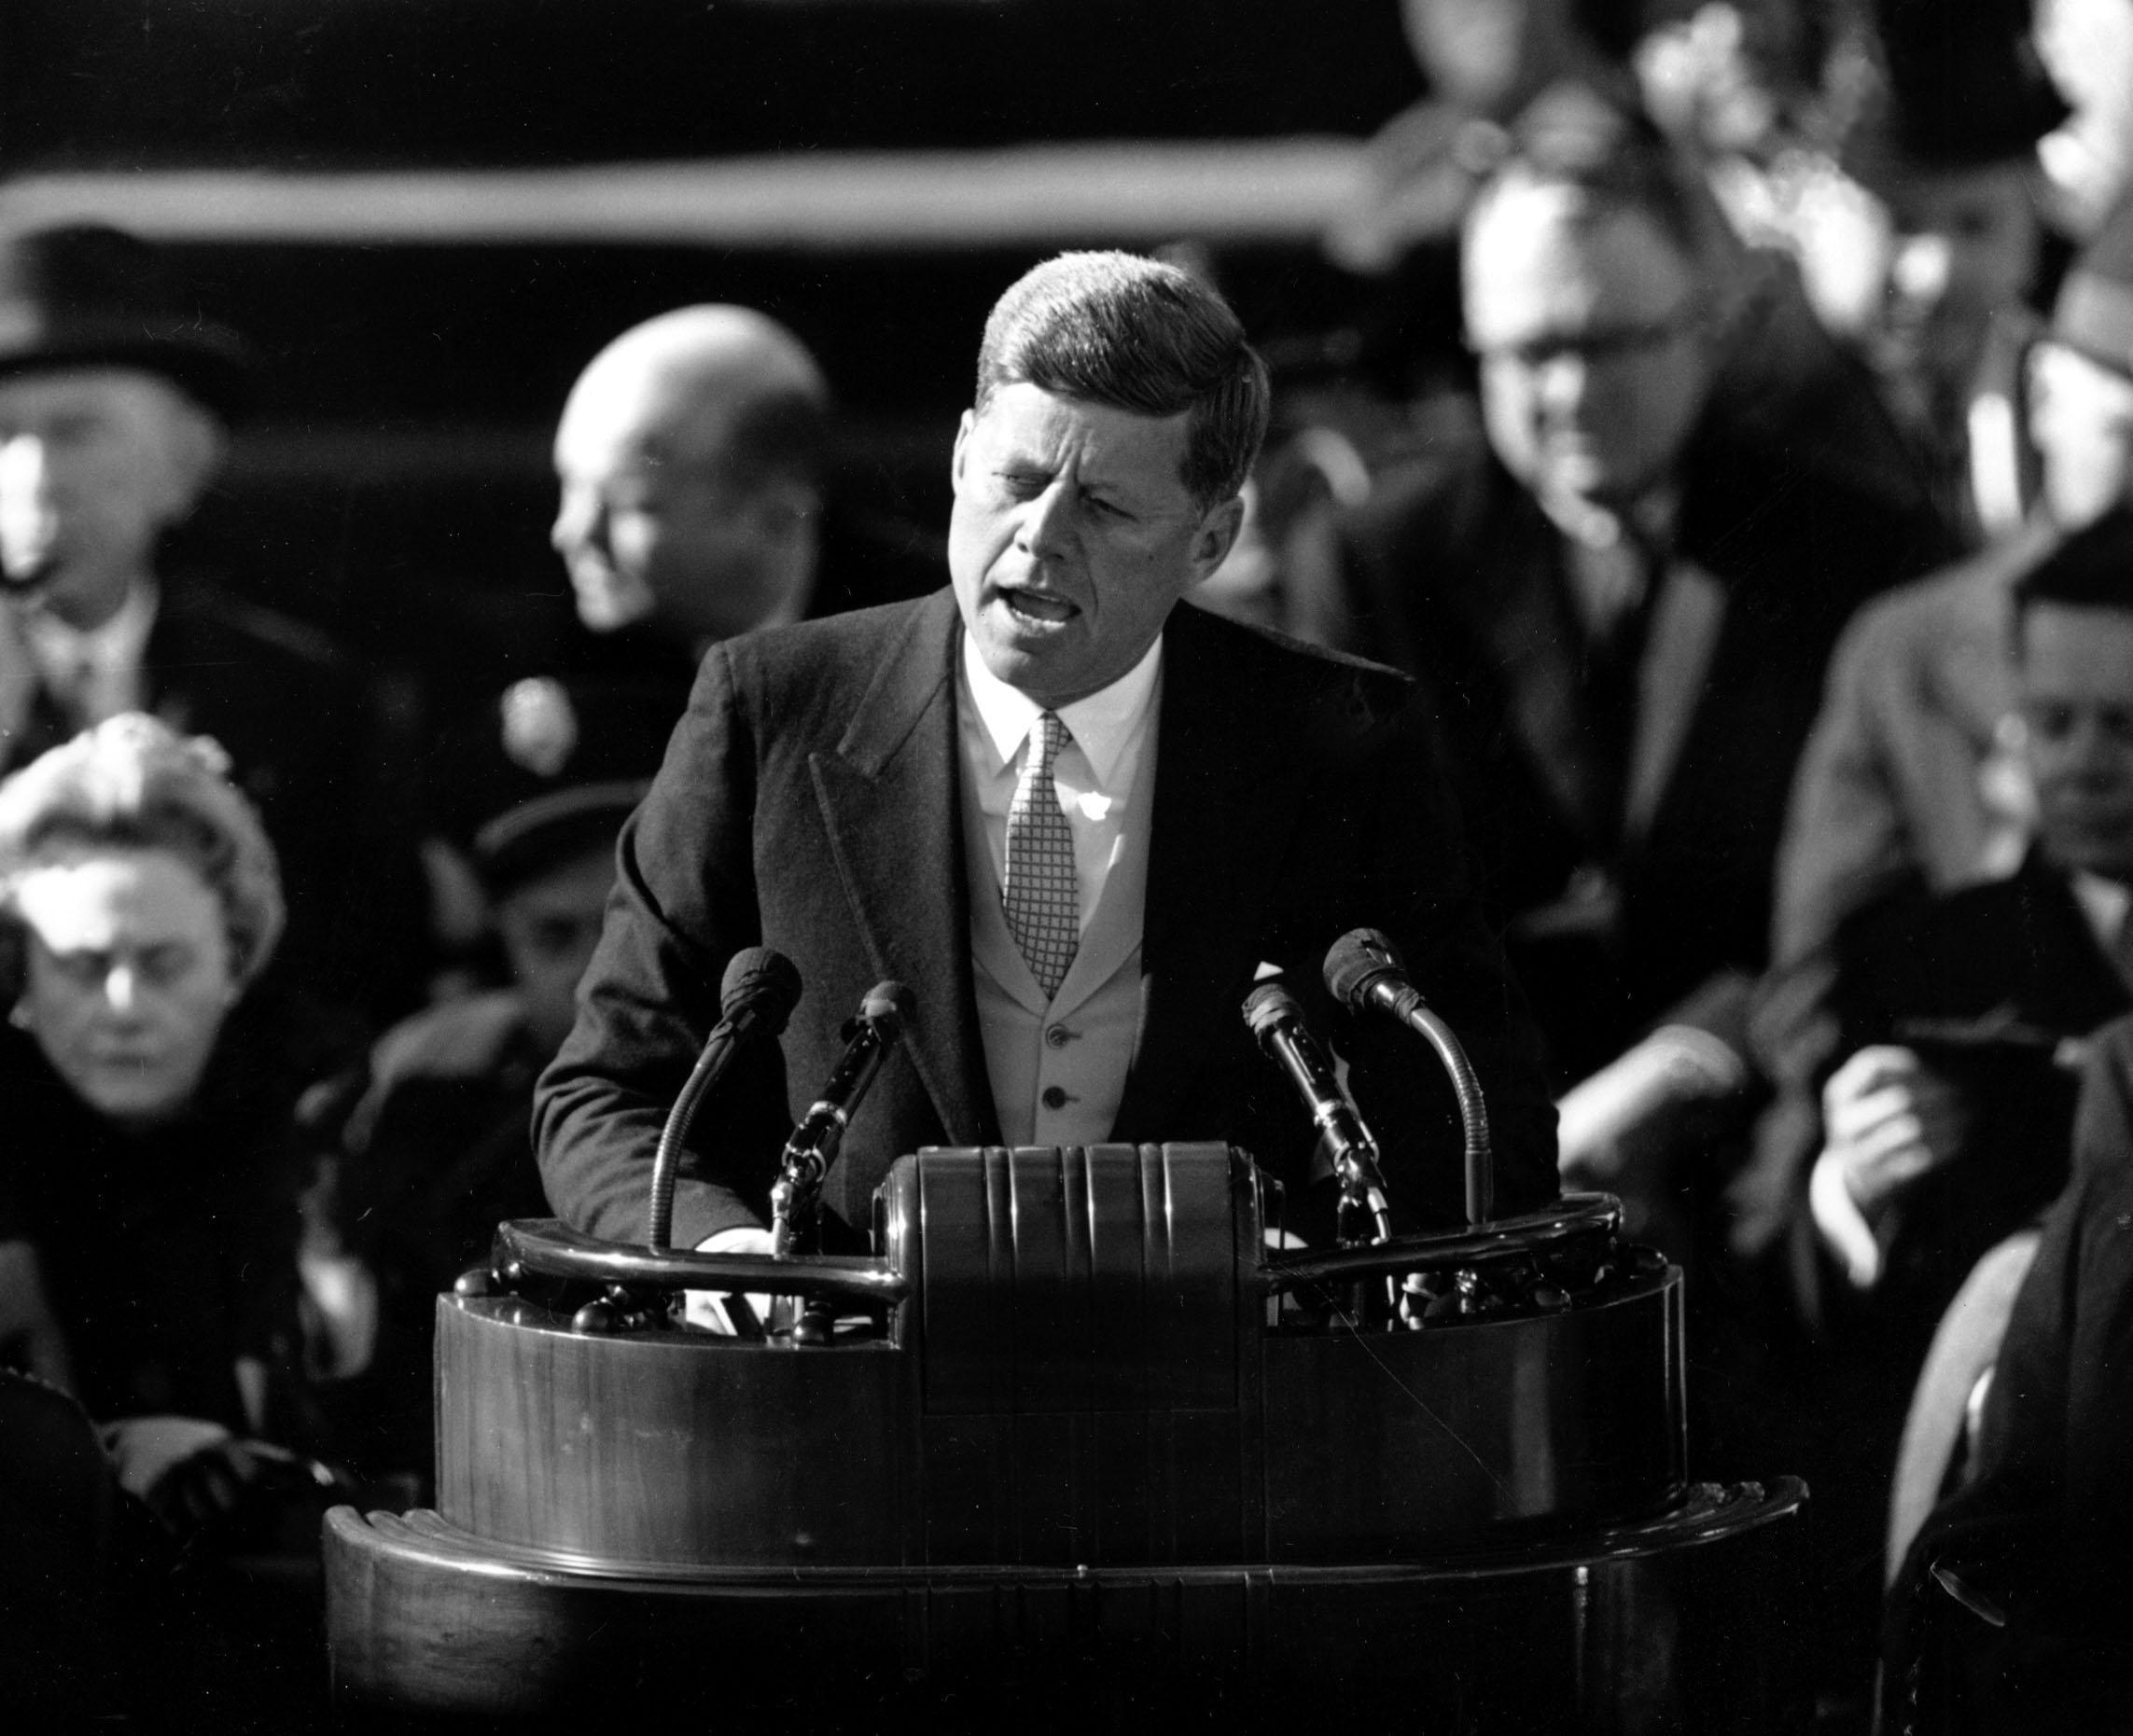 John F Kennedy Inaugural Address Jan 20